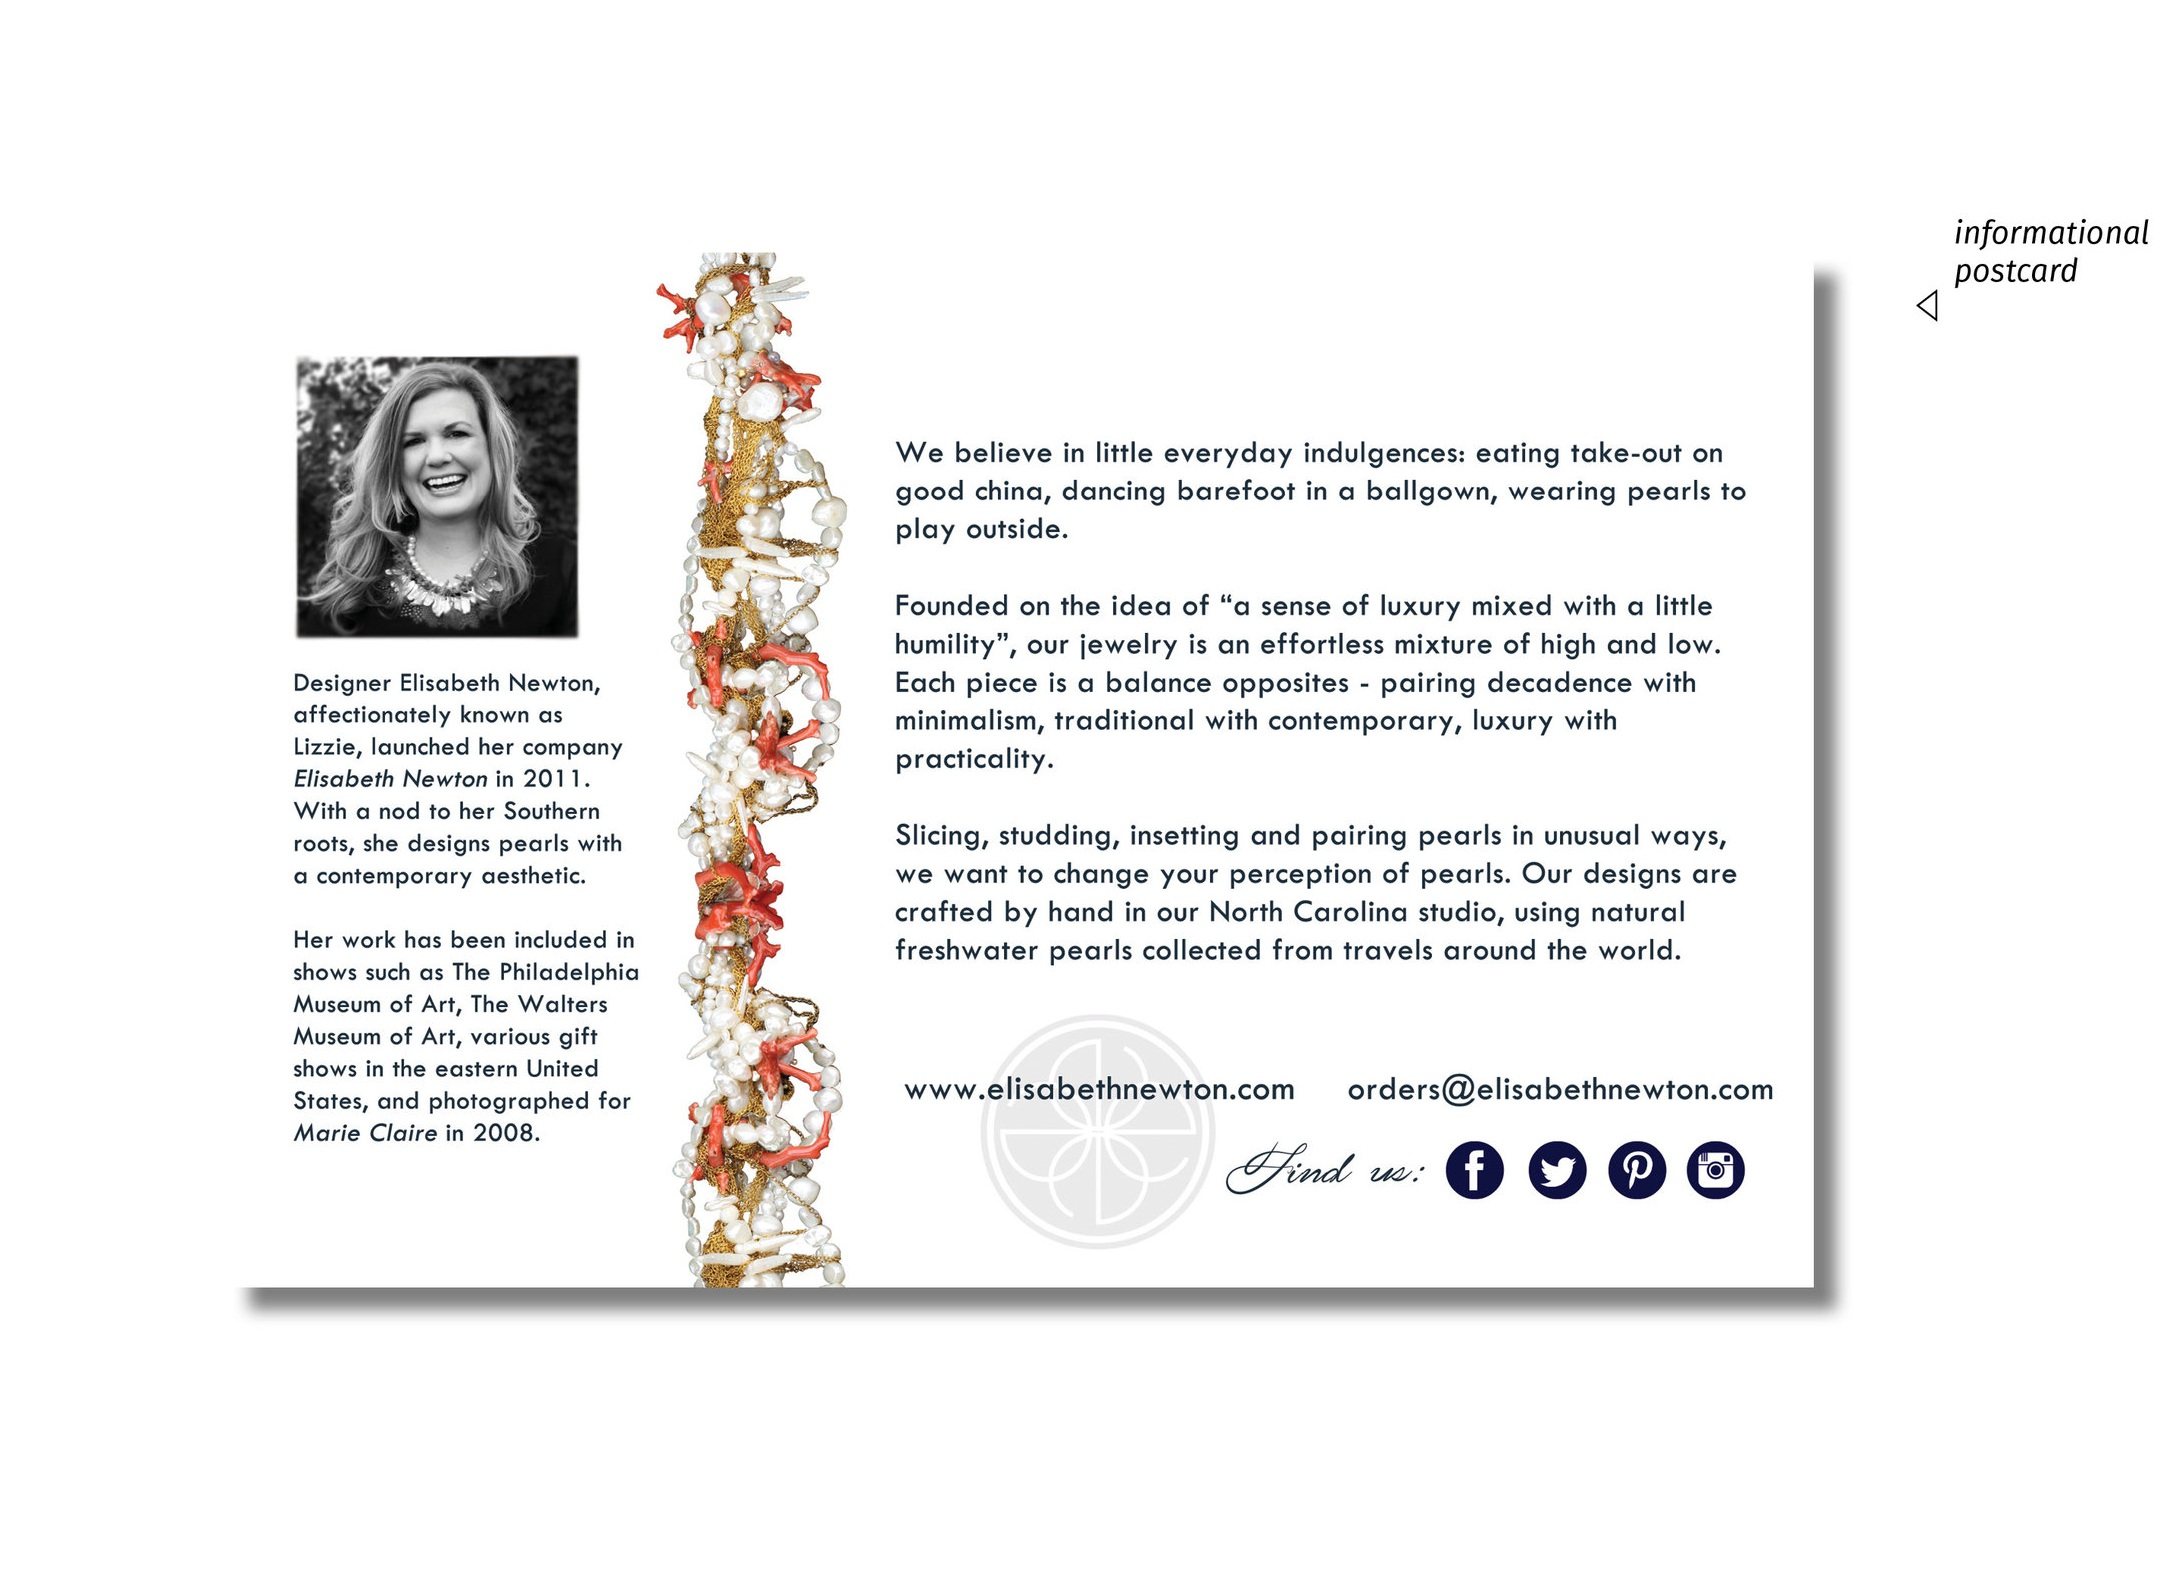 """Postcards - The informational postcard (4x7.5"""") offered additional insight into Elisabeth Newton Contemporary Pearls while also complimenting the business card and overall company branding."""